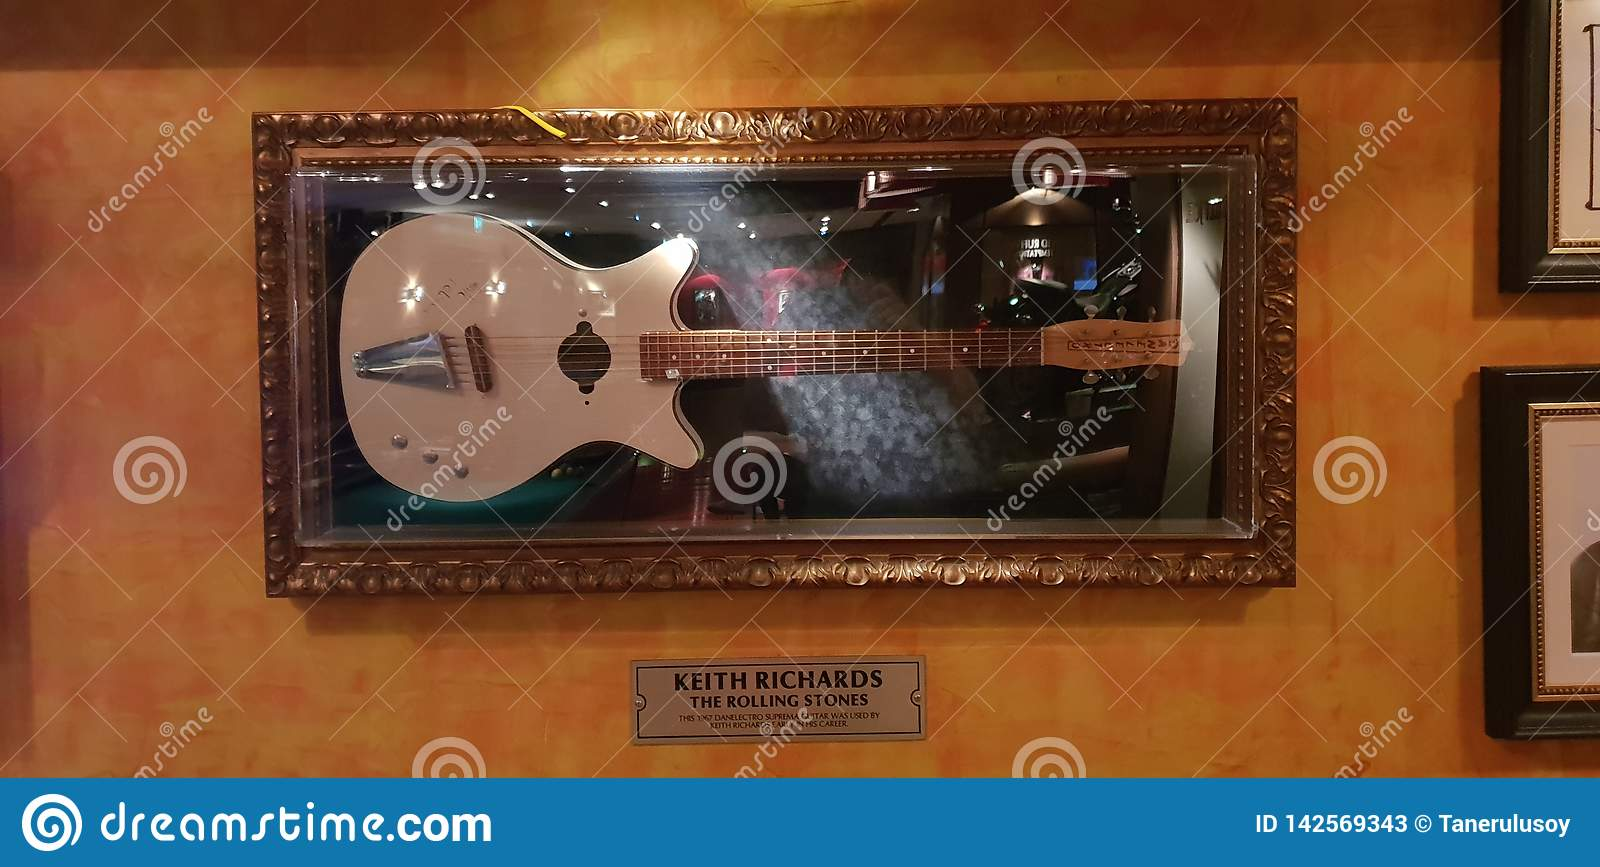 Guitare de Keith Richards